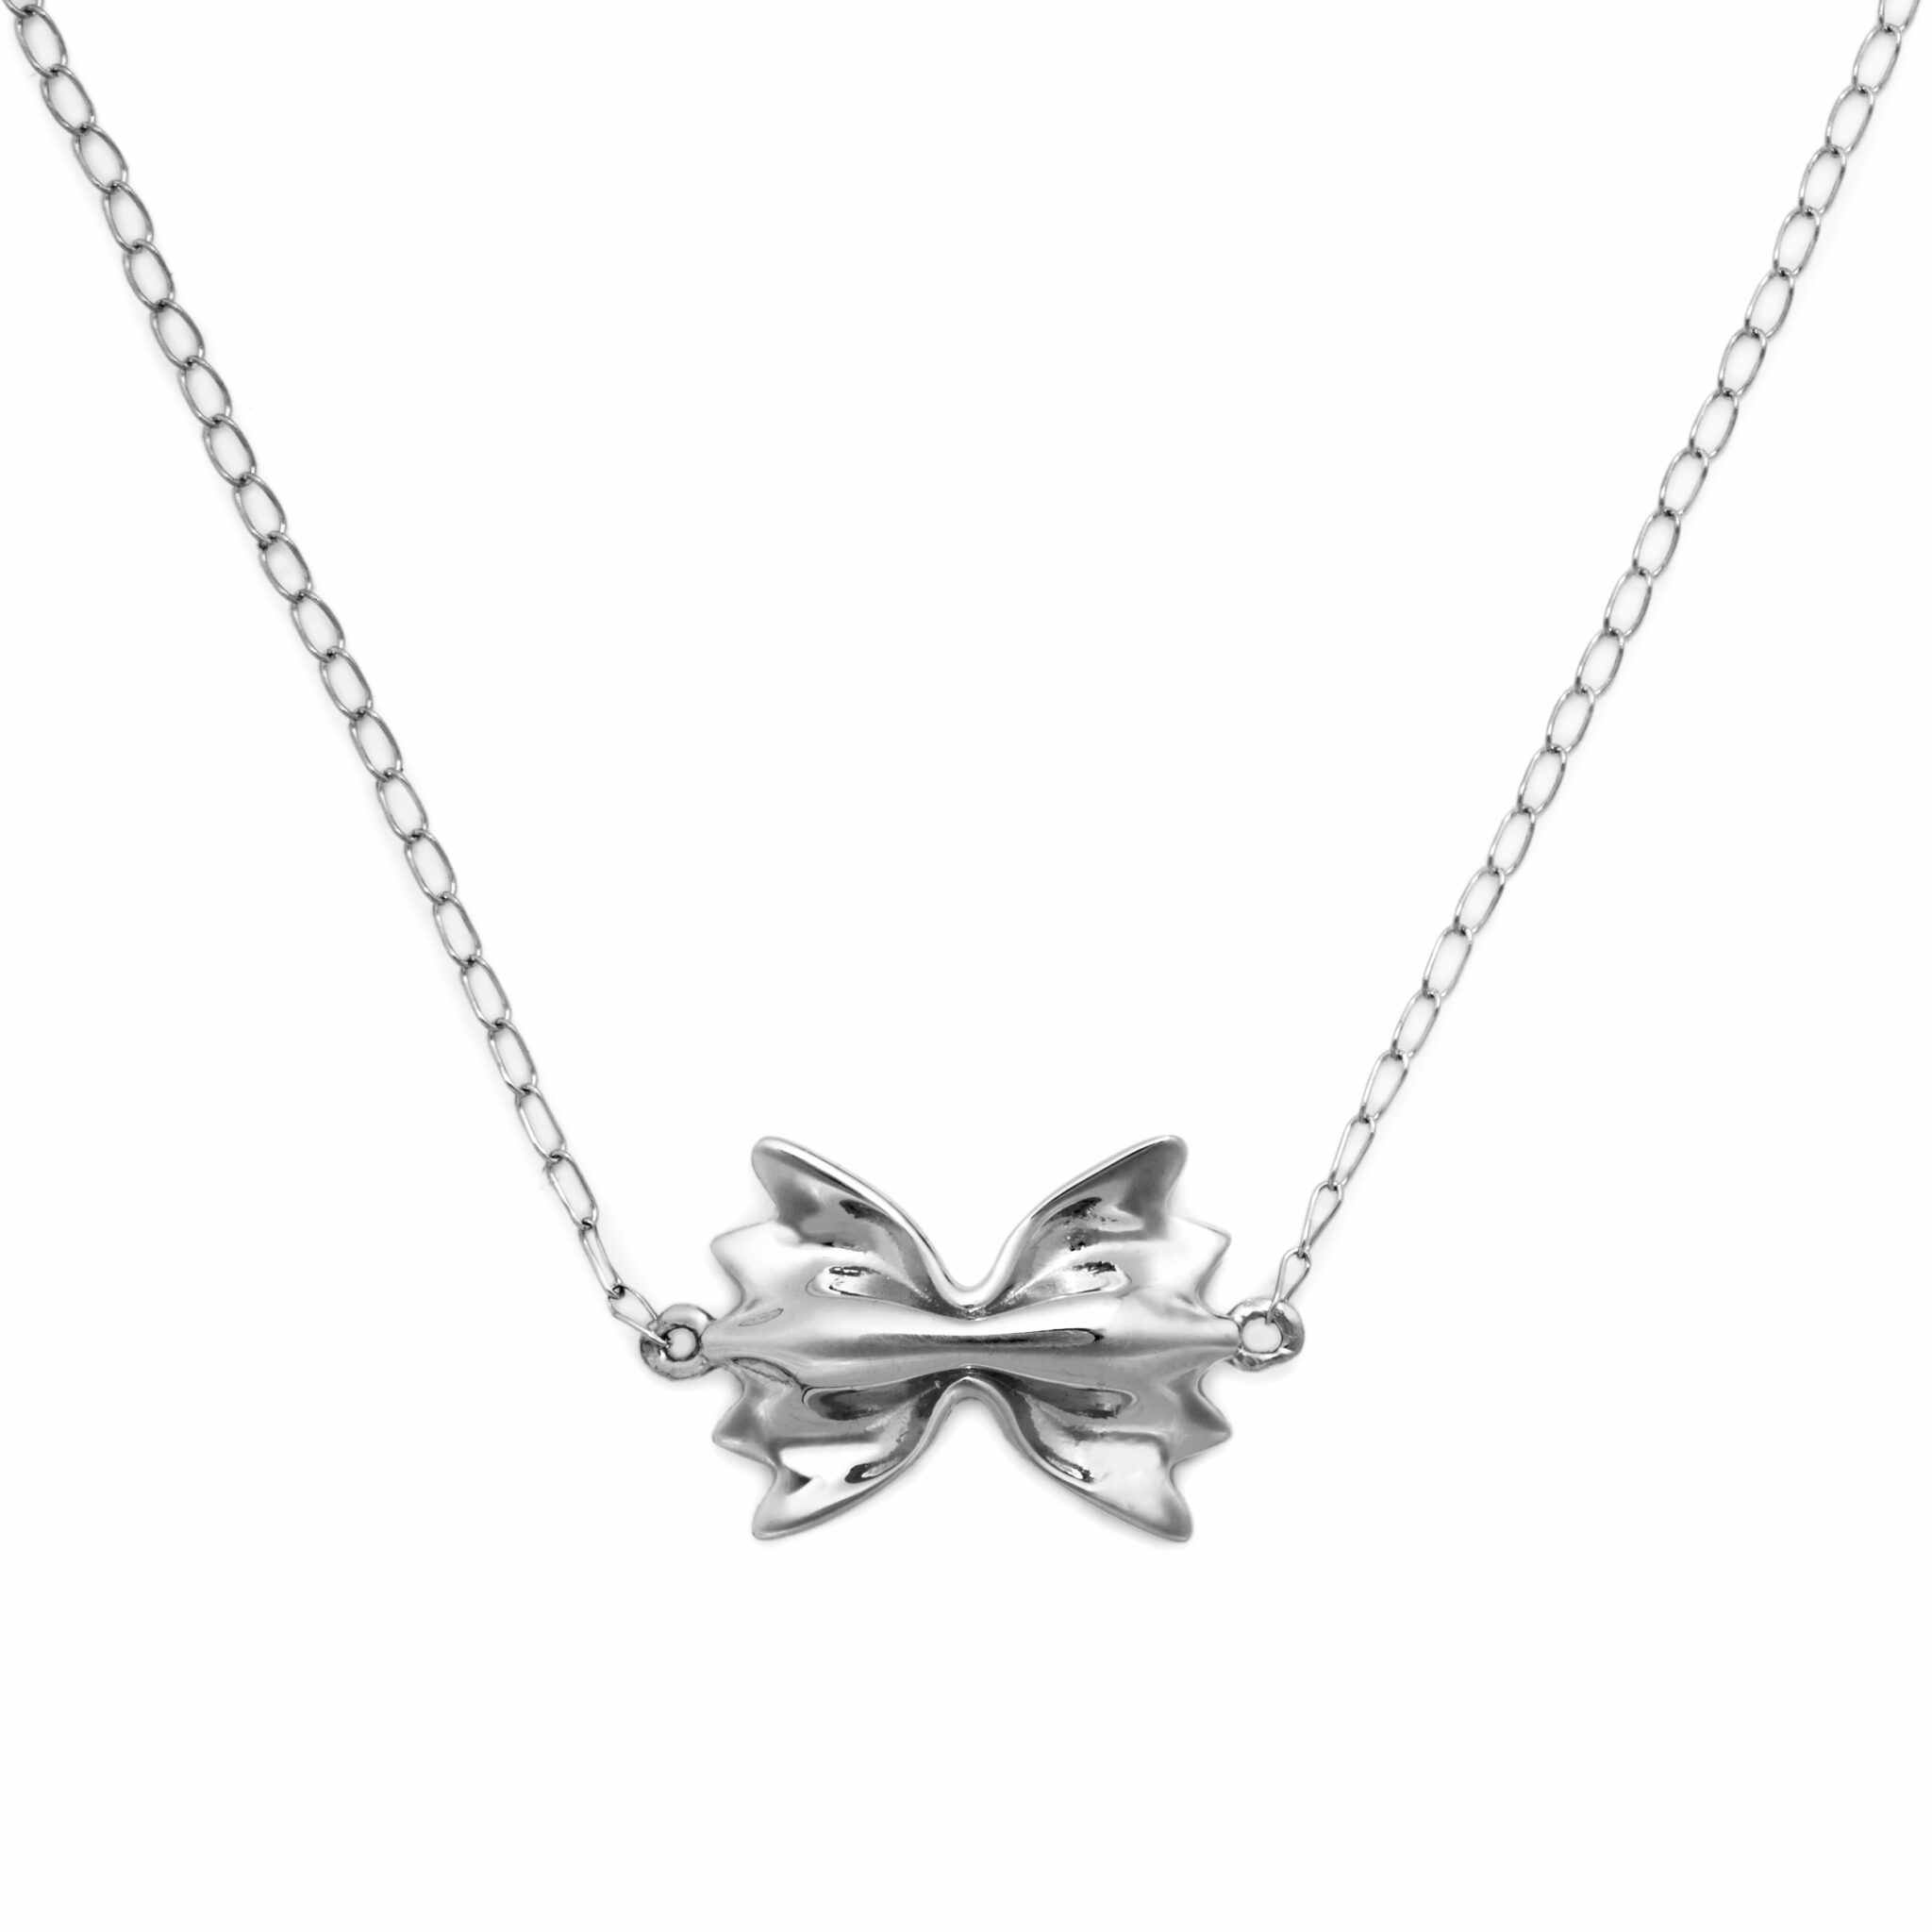 Farfalle Necklace, Mini Size, Sterling Silver